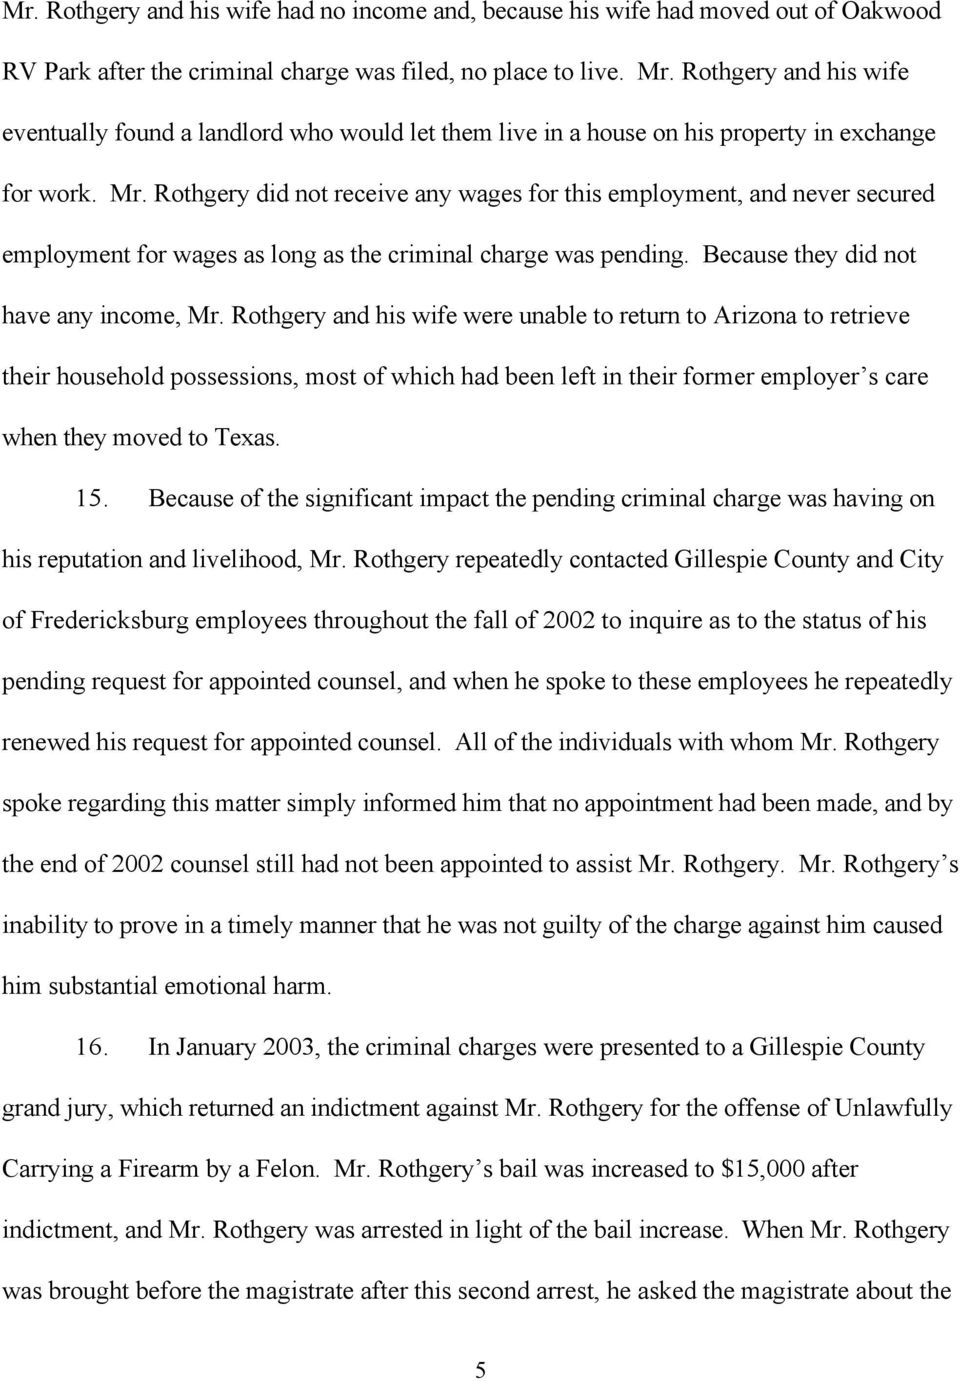 Rothgery did not receive any wages for this employment, and never secured employment for wages as long as the criminal charge was pending. Because they did not have any income, Mr.